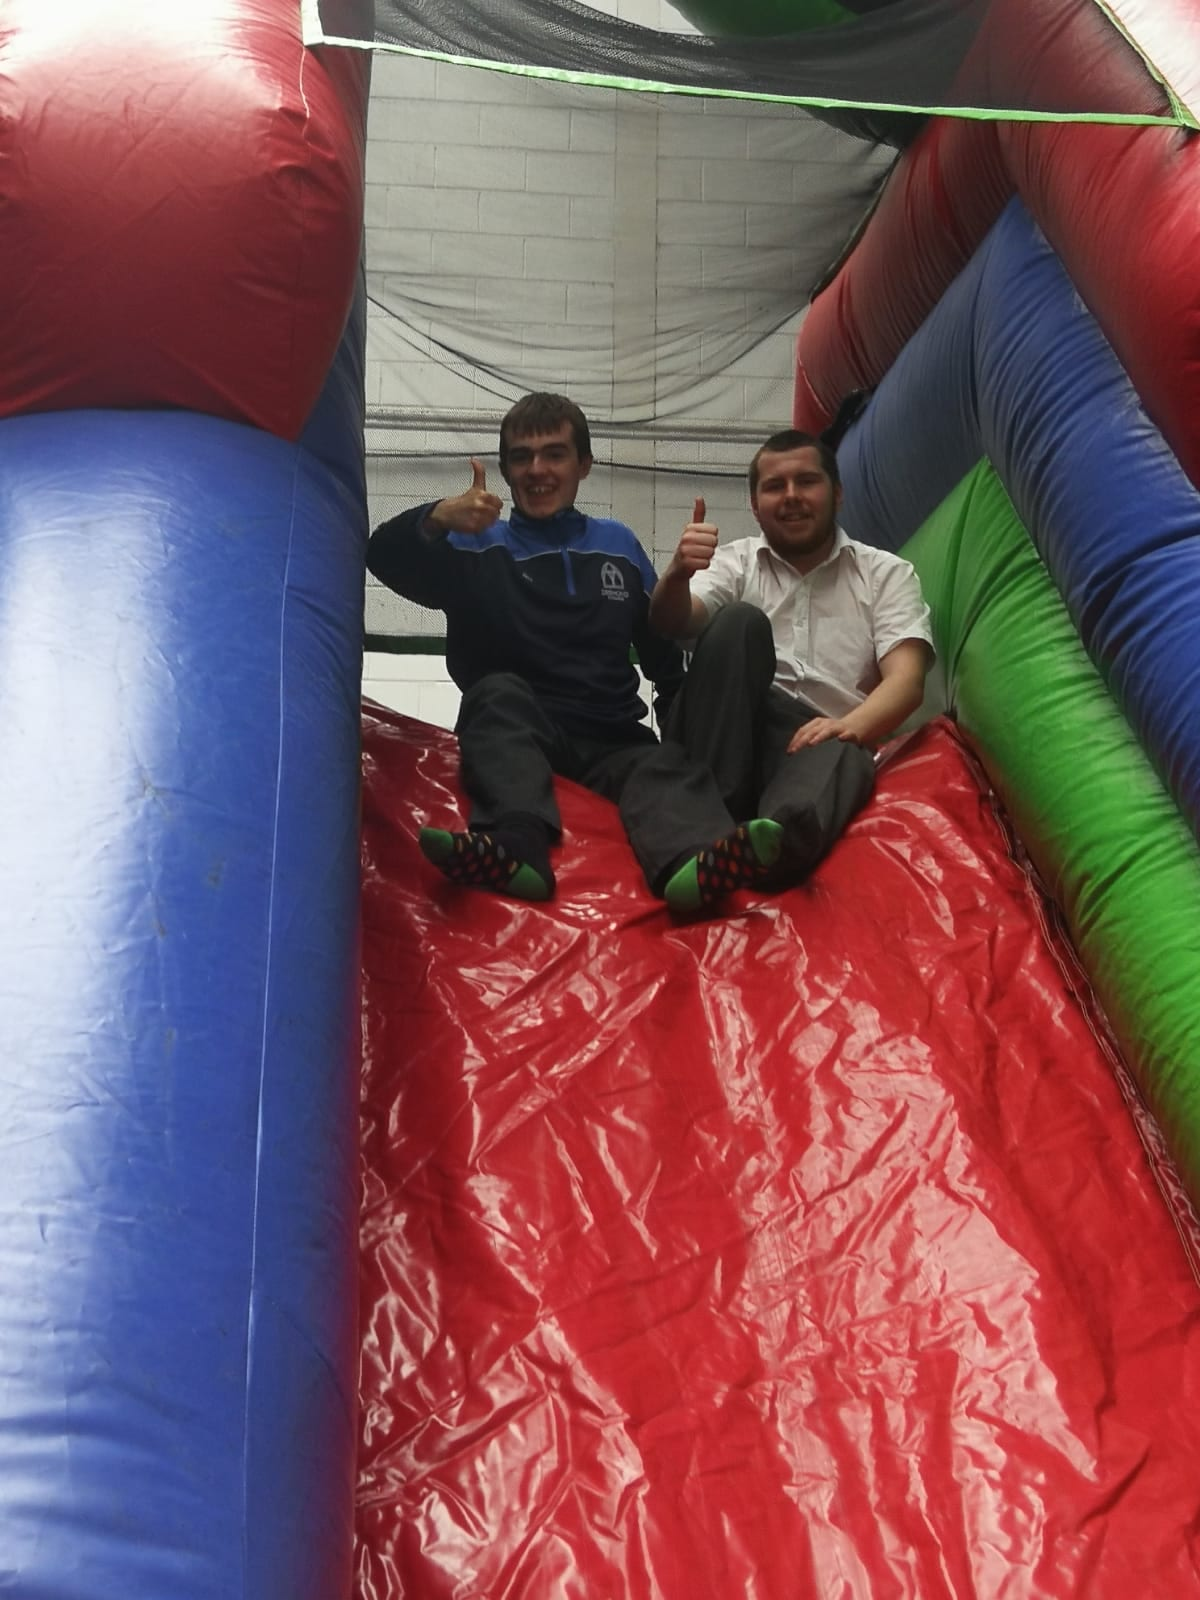 Alan Wallace and Shane Scanlon on the obstacle course